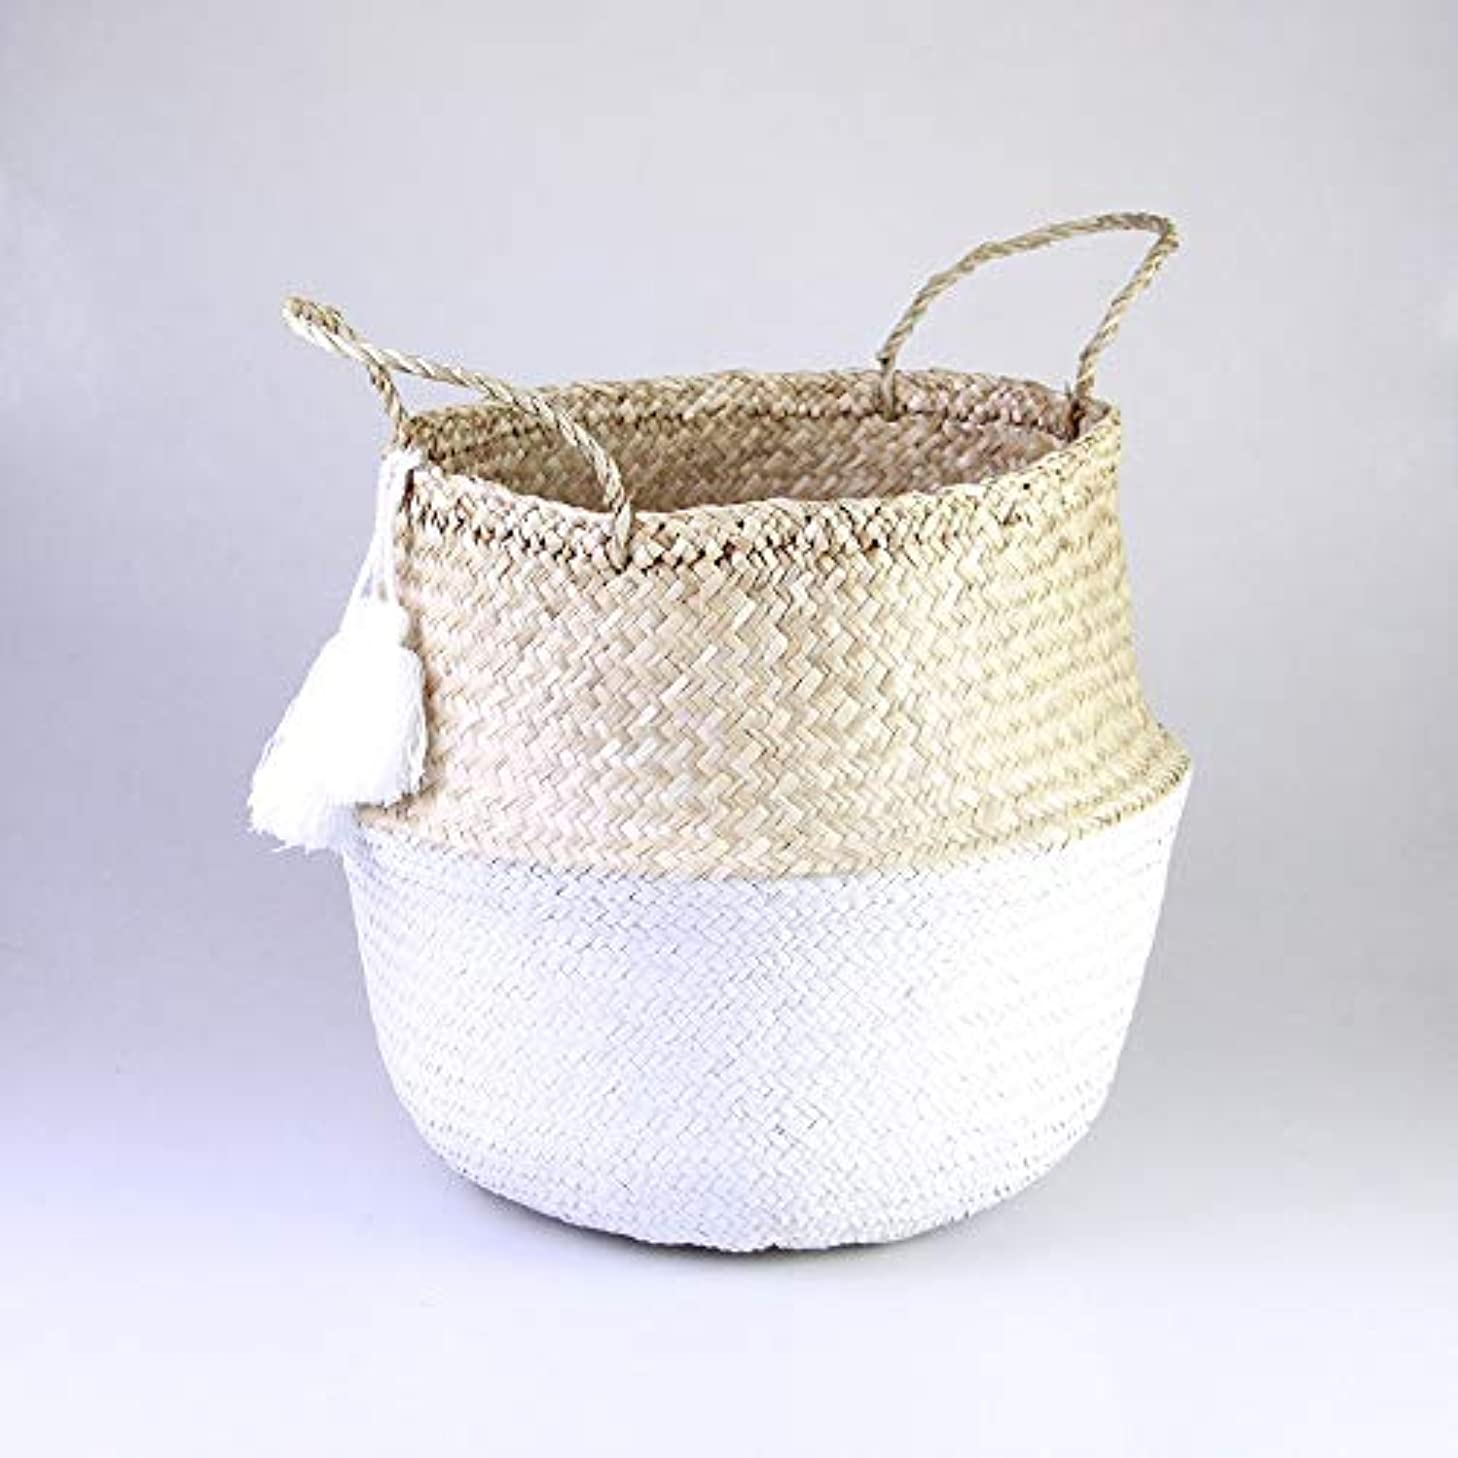 Leonard & Hazel Seagrass Belly Basket with Dipped White Bottom and 3 White Tassels (Large)